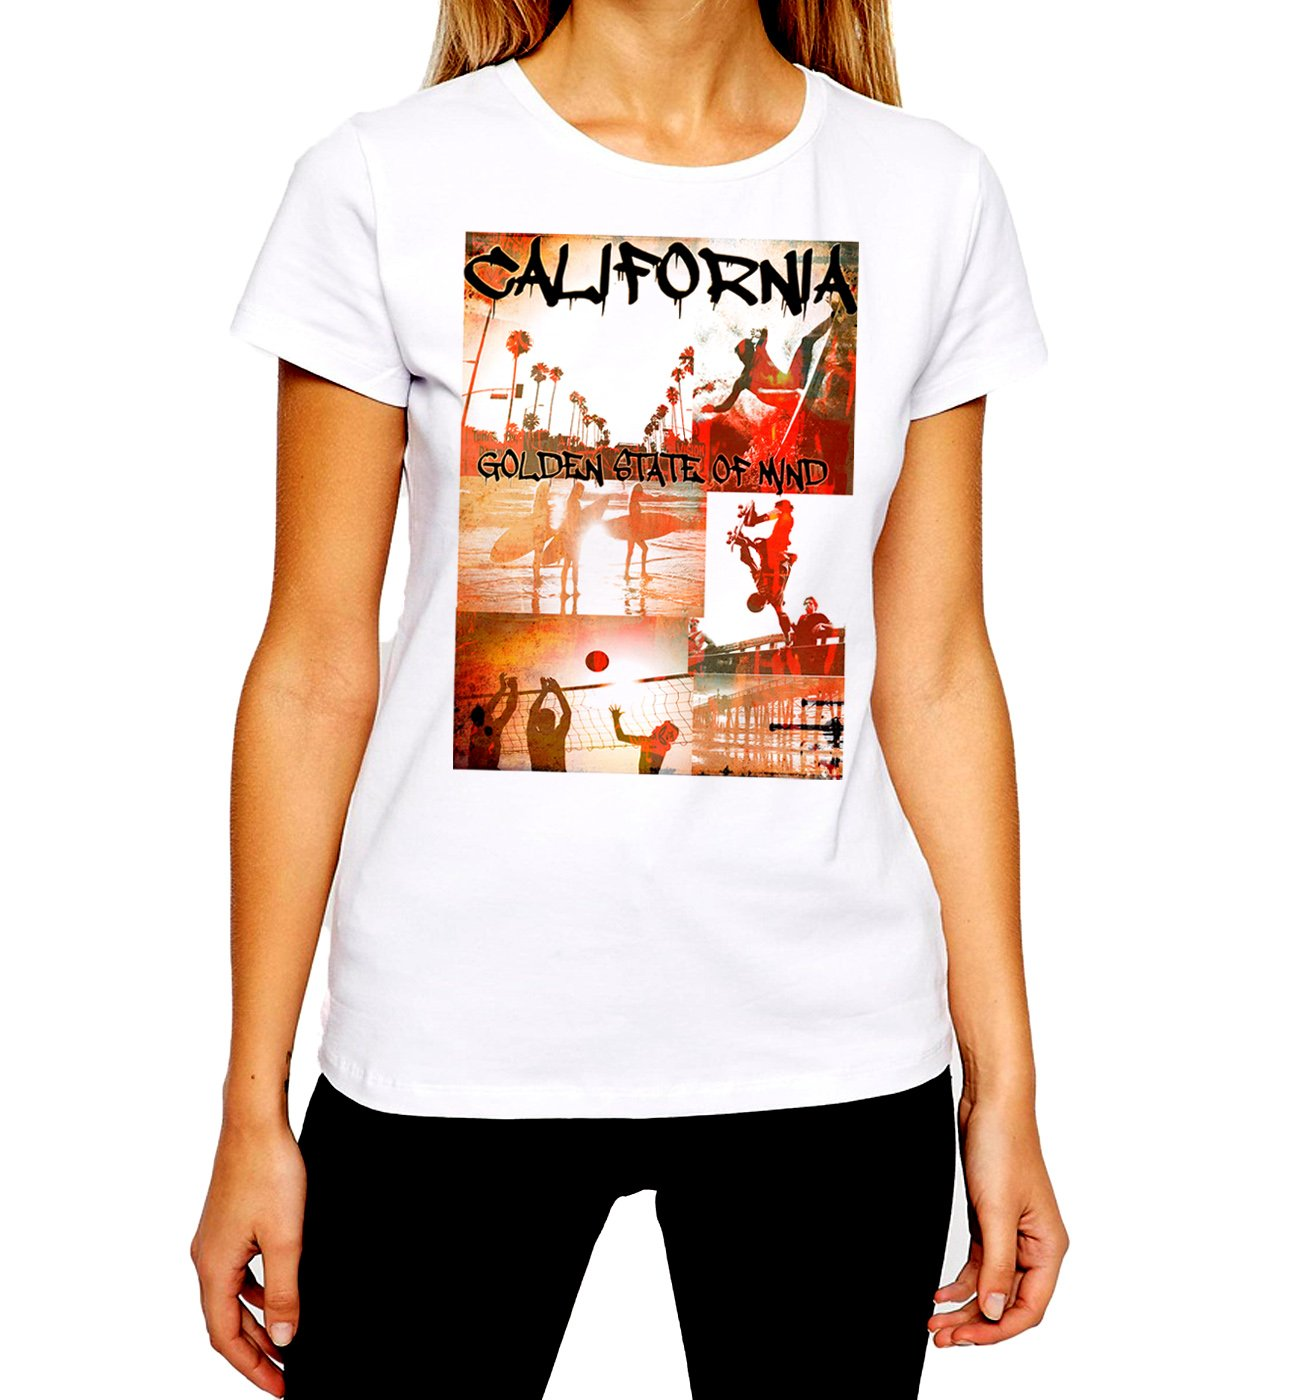 California Tshirt Los Angeles La San Diego Beach Surfing Tee Ii